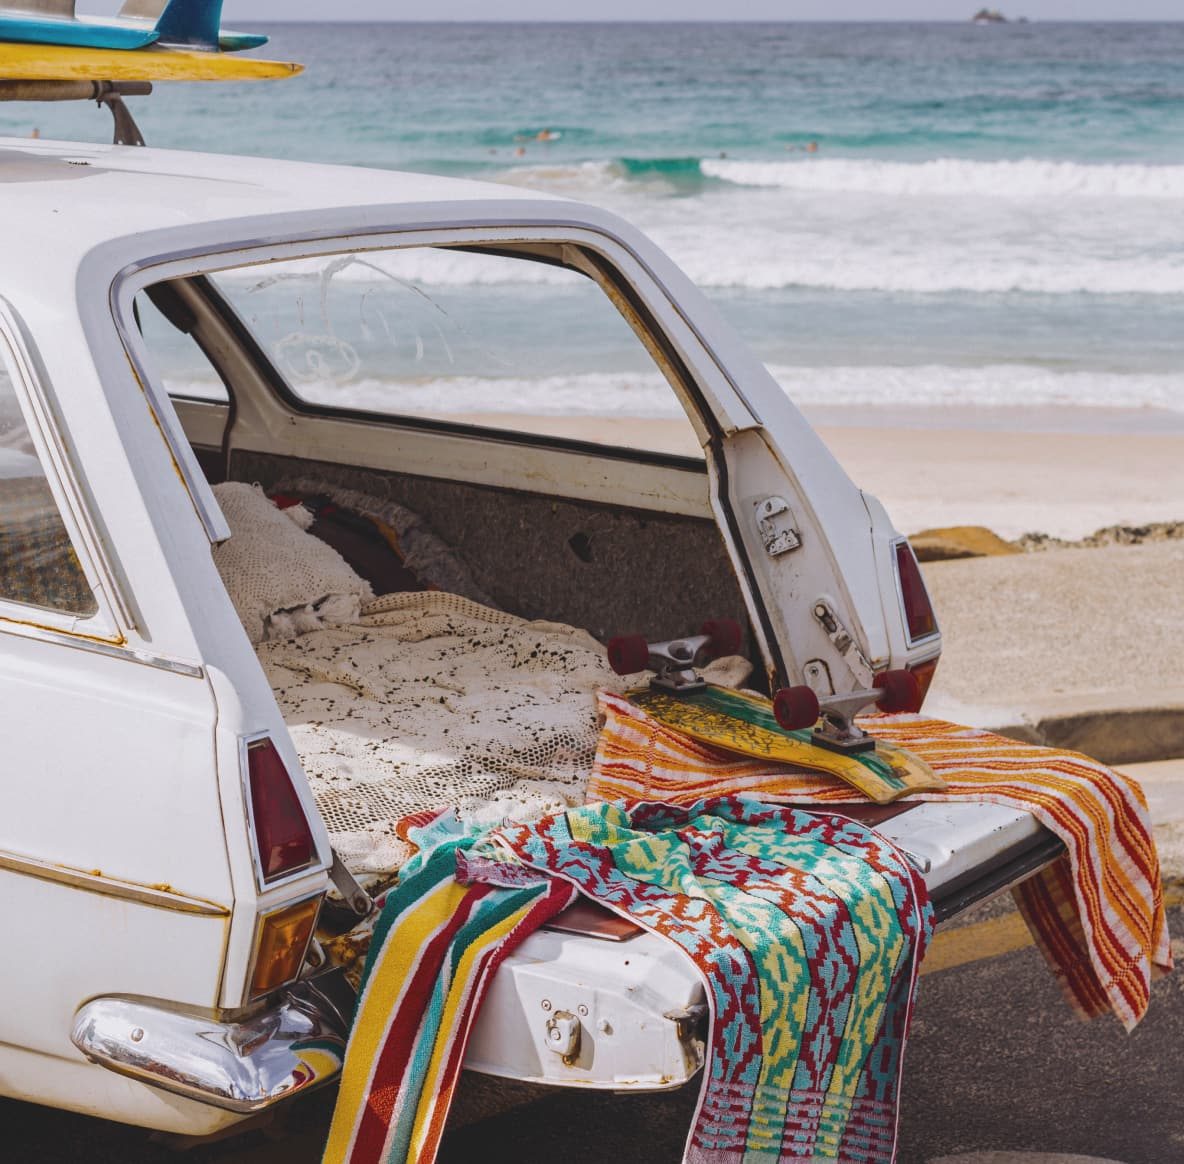 The open back of a white station wagon covered in beach towels, surf boards on top and the ocean in the background